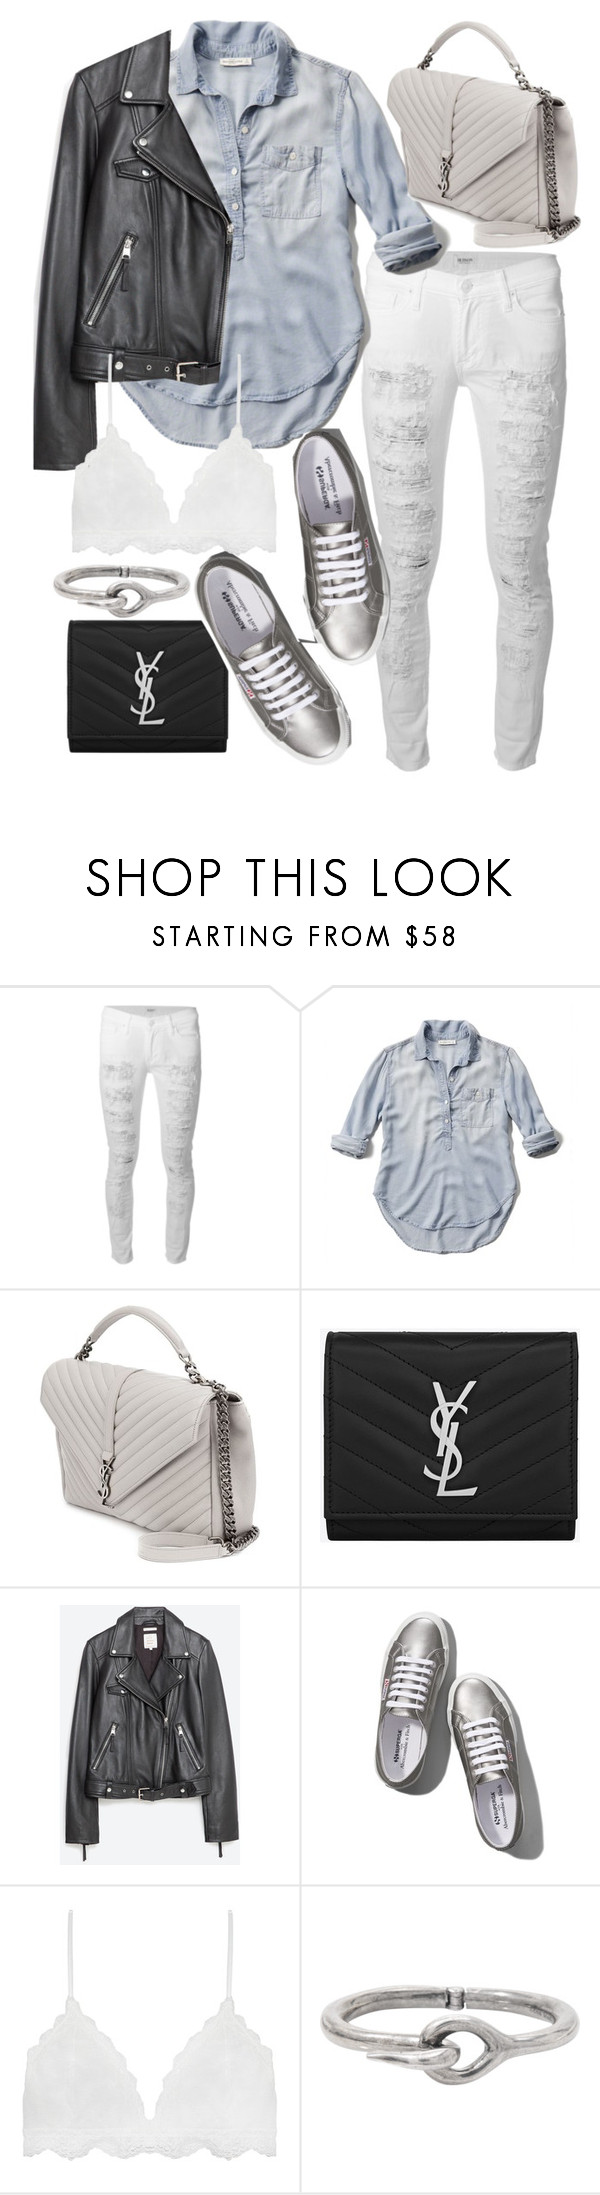 """Untitled #19846"" by florencia95 ❤ liked on Polyvore featuring Hudson, Abercrombie & Fitch, Yves Saint Laurent, Zara and Acne Studios"